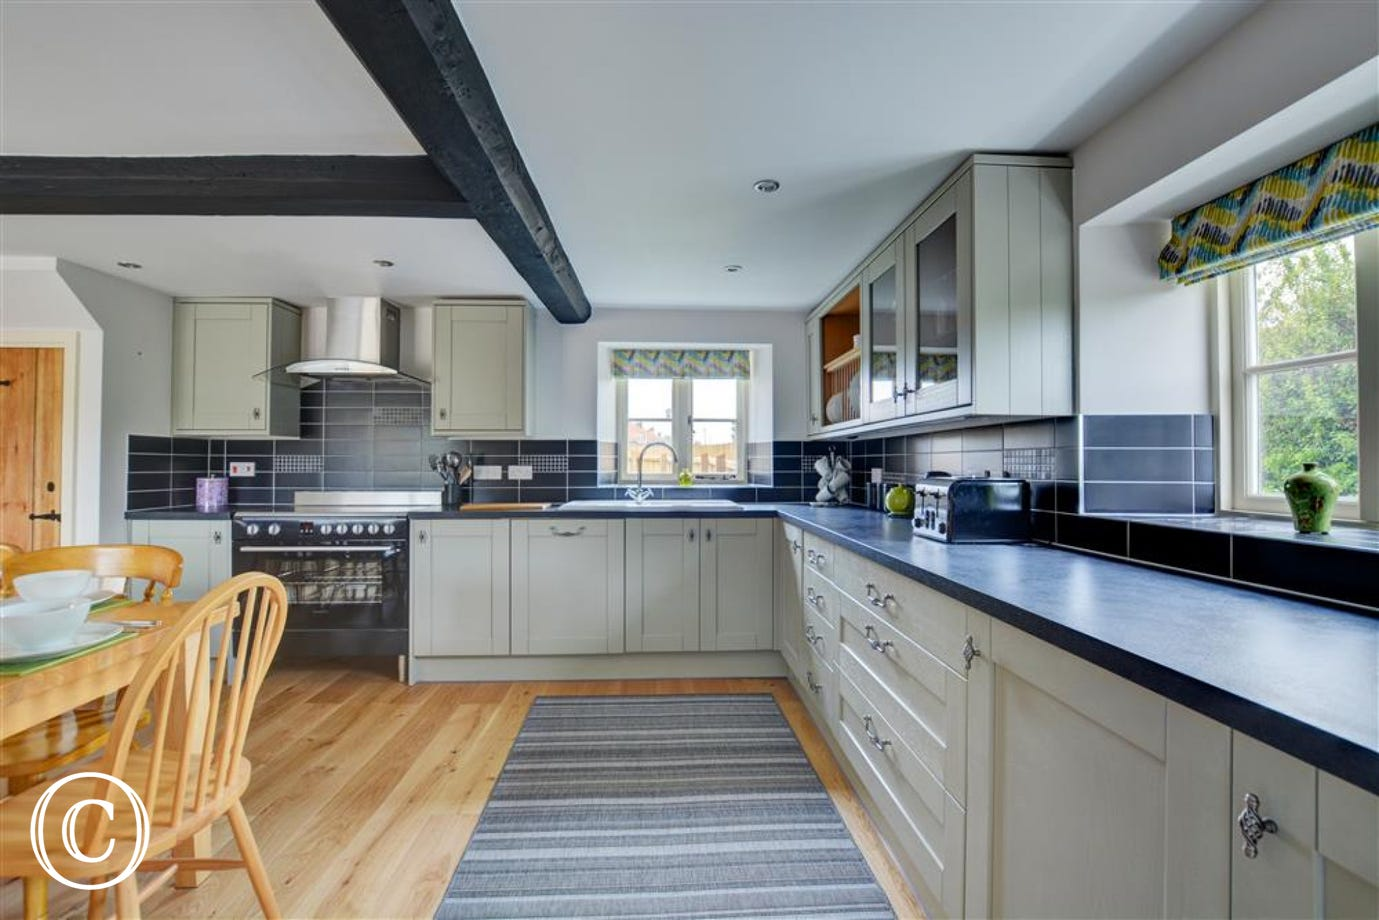 The kitchen is well equipped with everything you need for your self catering break